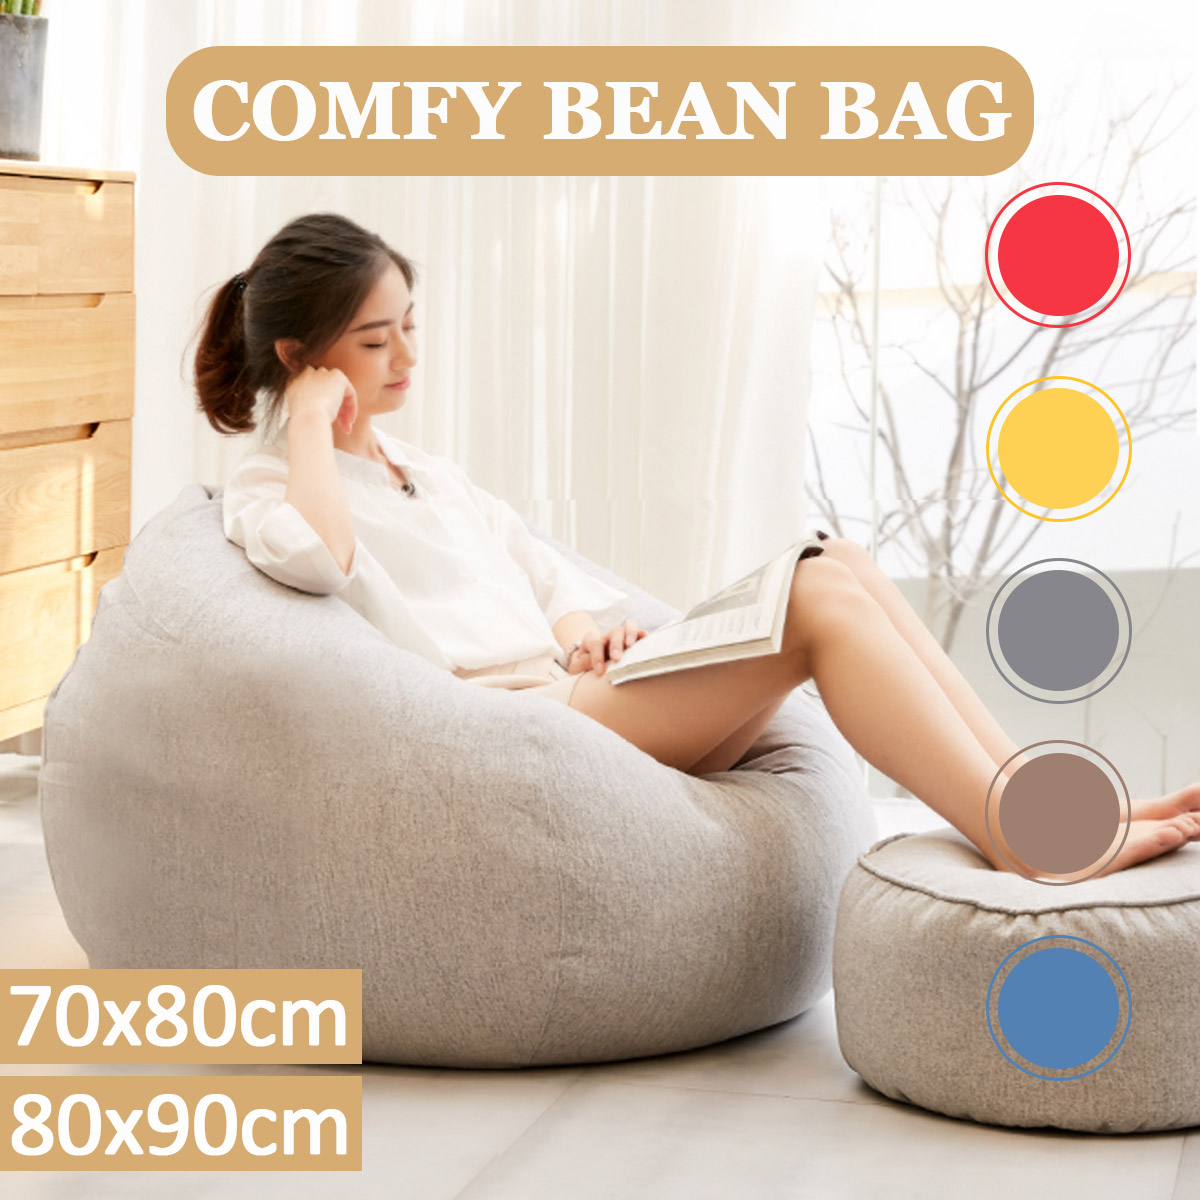 2 Sizes Large Bean Bag Chair Couch Sofa Covers Indoor Lazy Lounger For Adults Baby Seats Protector